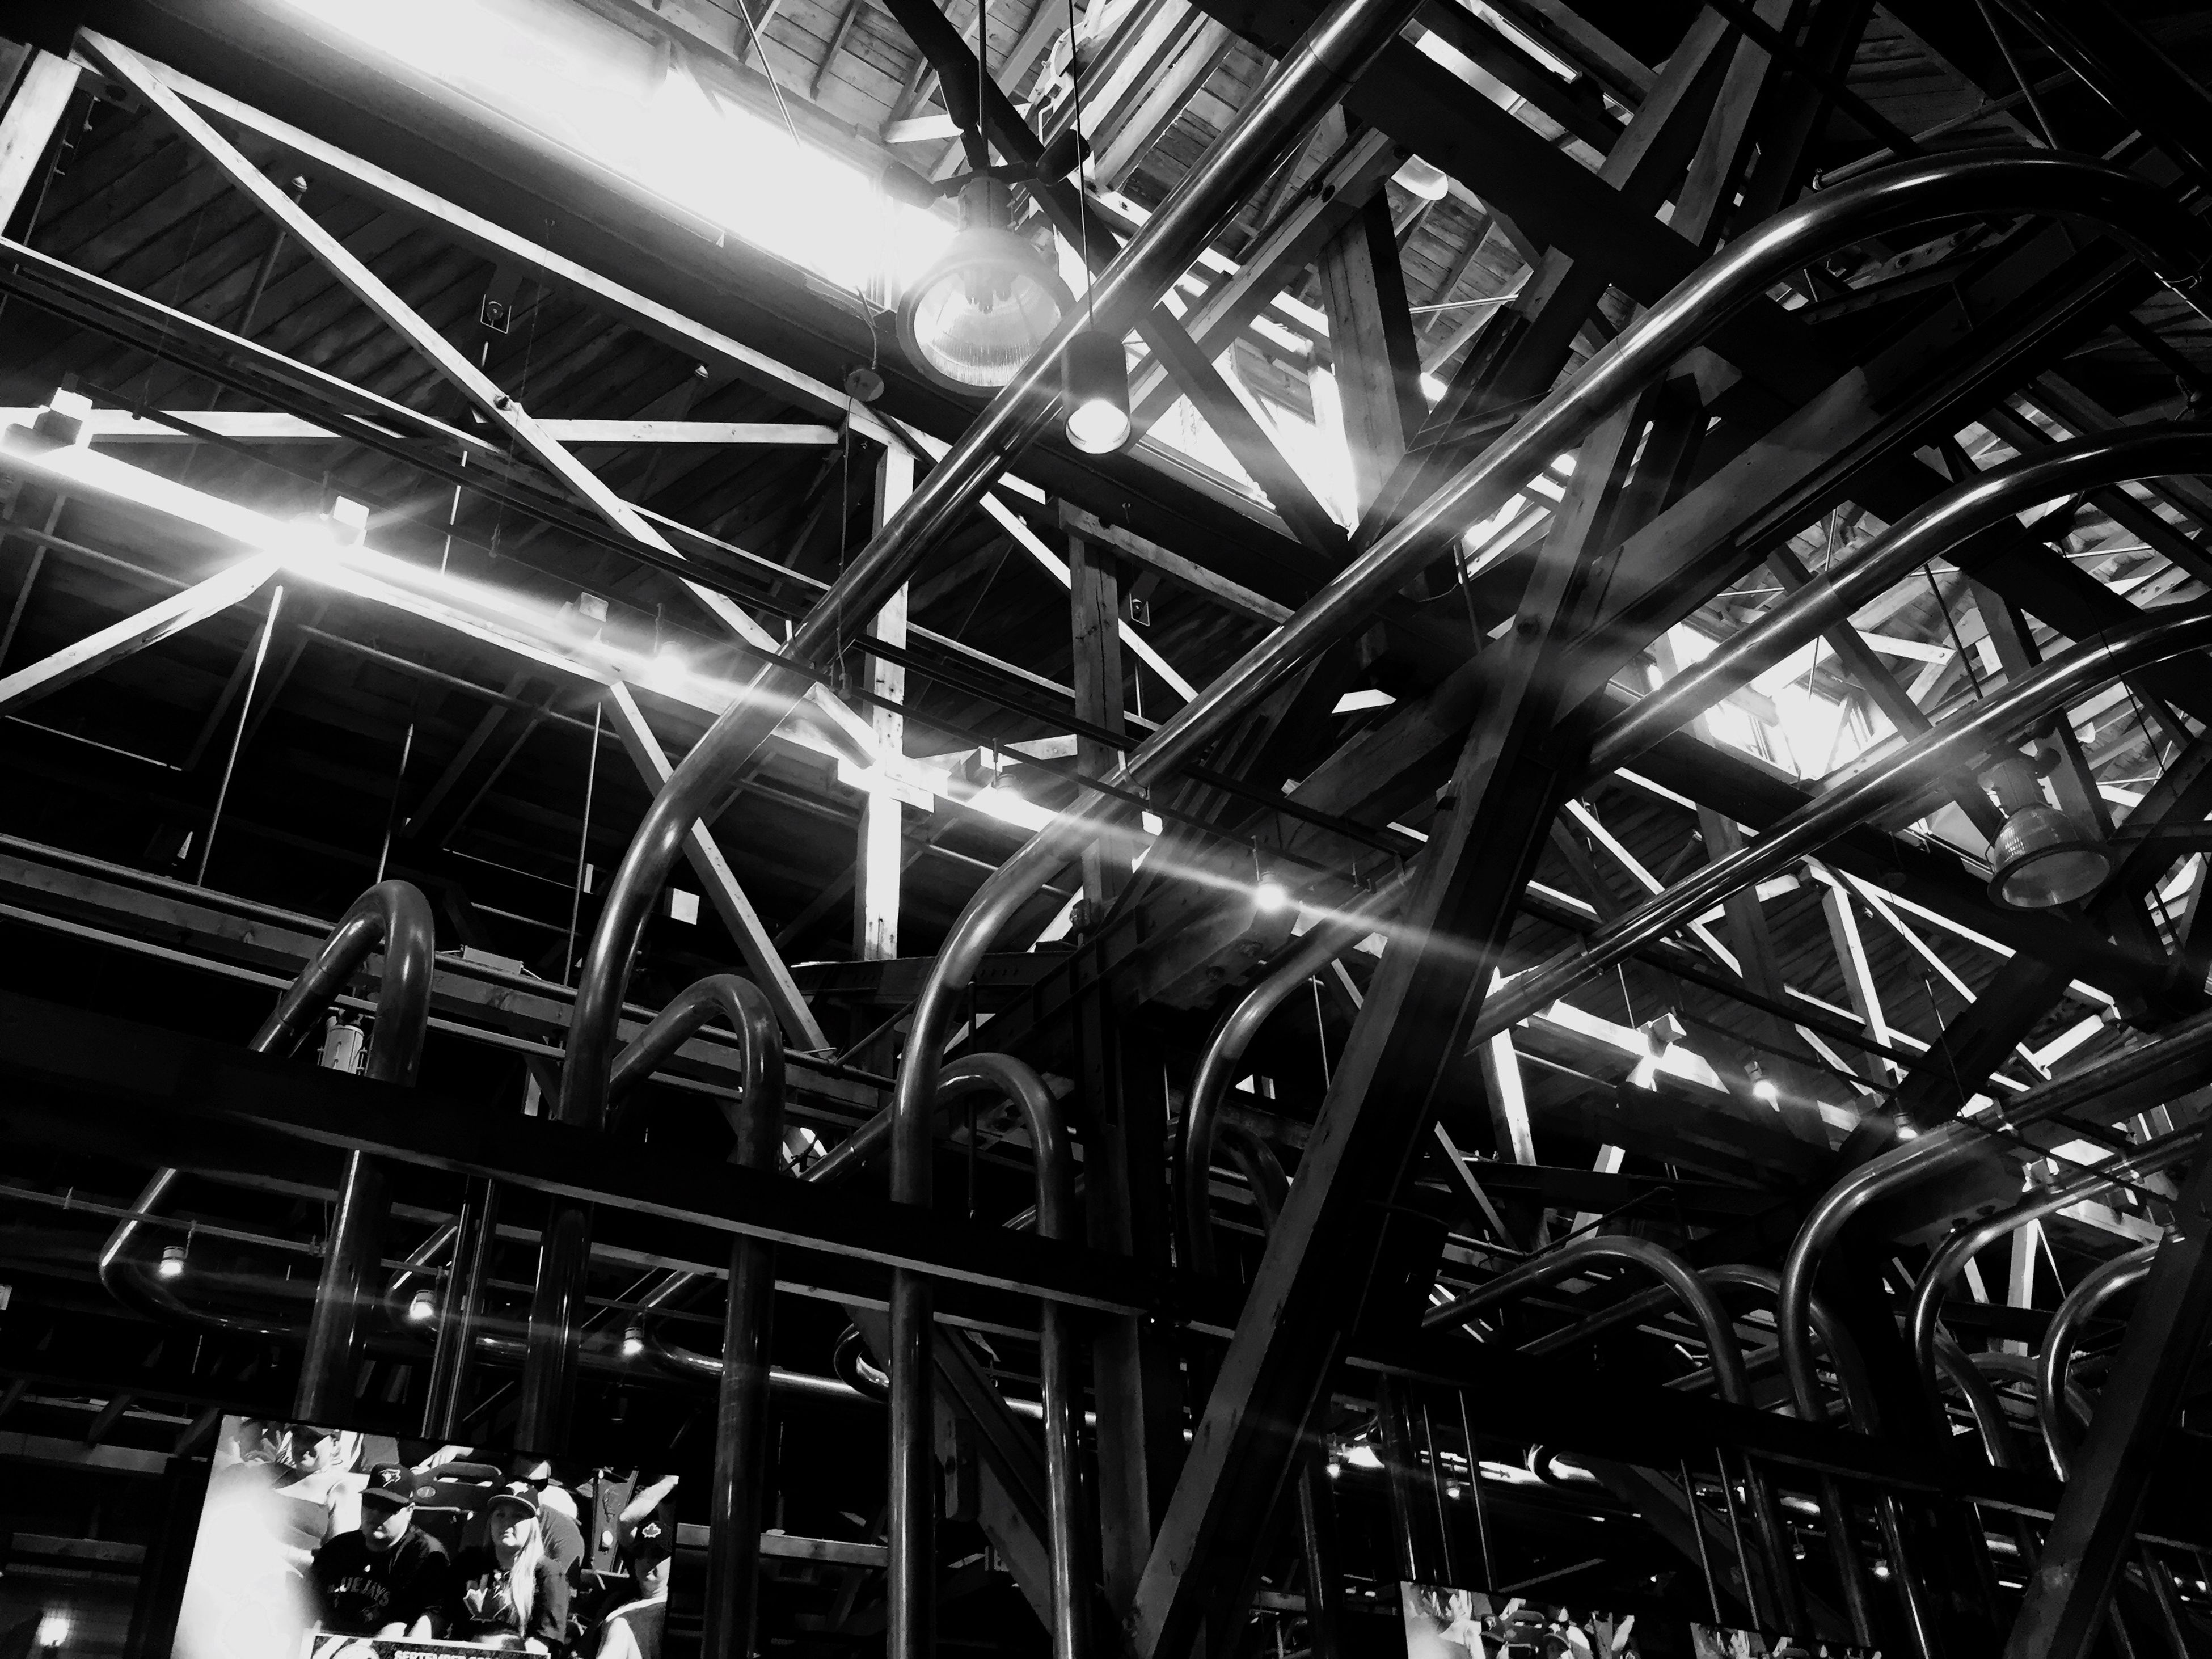 low angle view, metal, built structure, architecture, metallic, ceiling, indoors, abandoned, grid, architectural feature, pattern, industry, backgrounds, full frame, no people, old, damaged, geometric shape, complexity, iron - metal